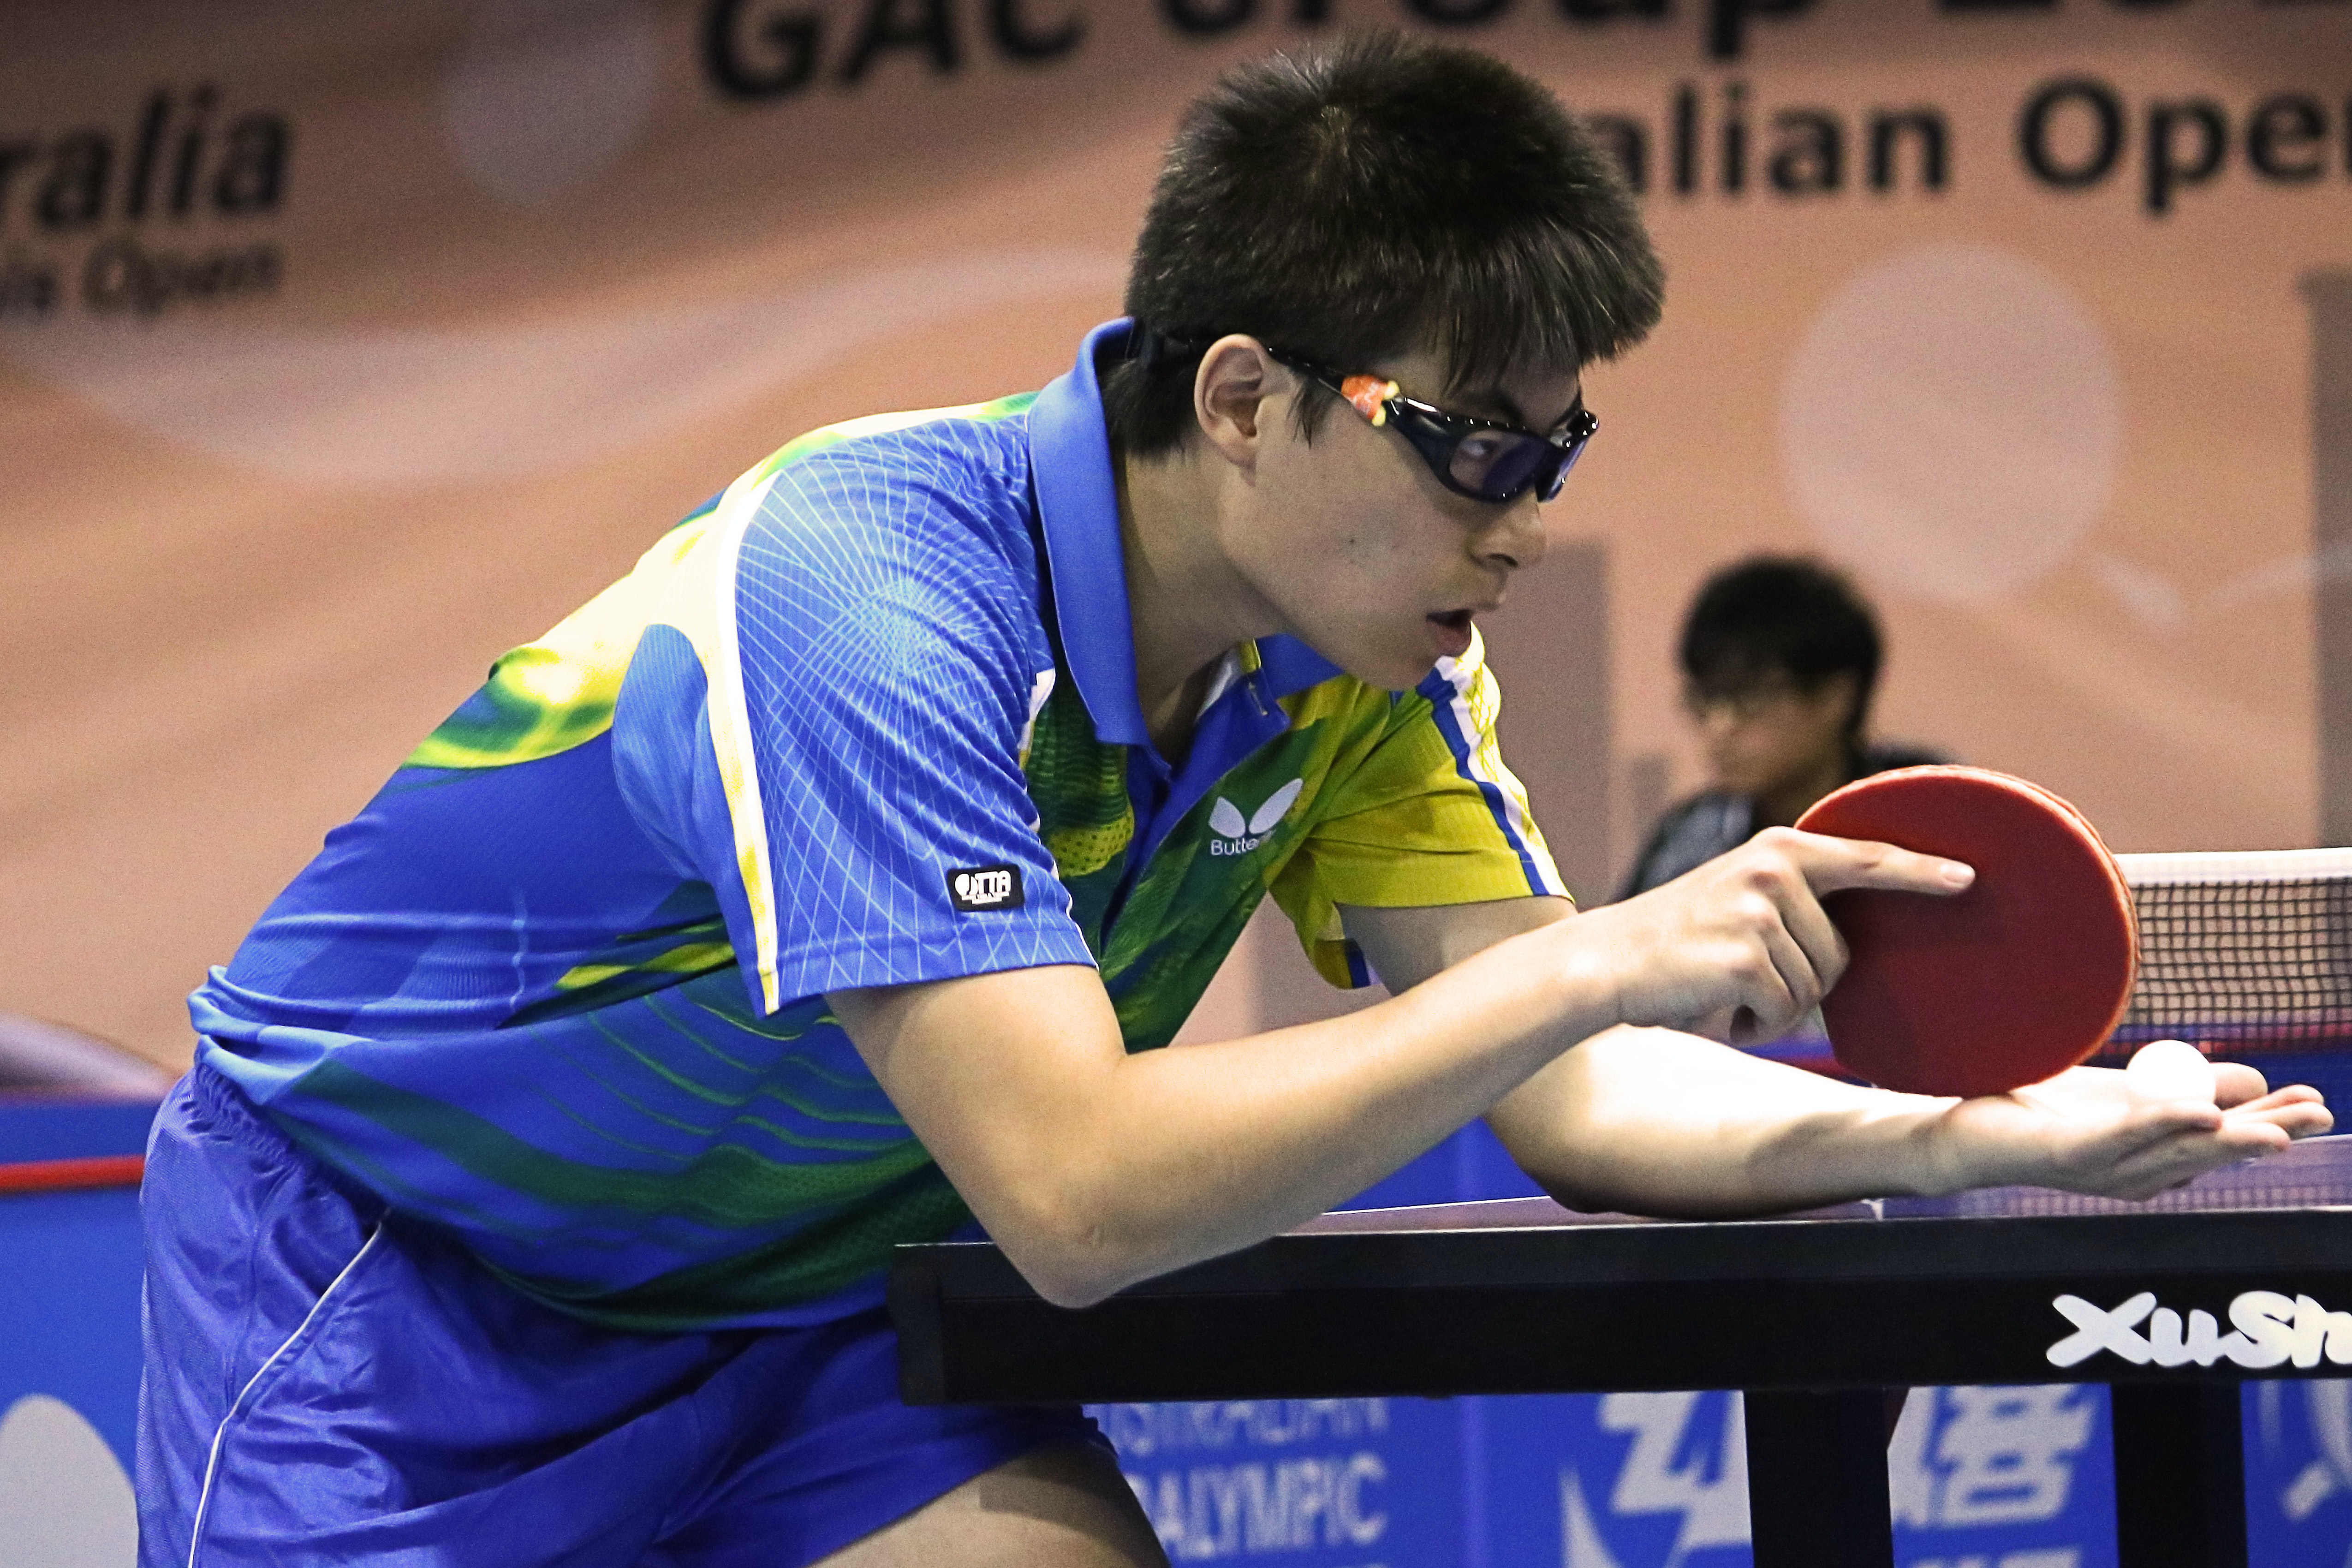 table tennis player serving front of table